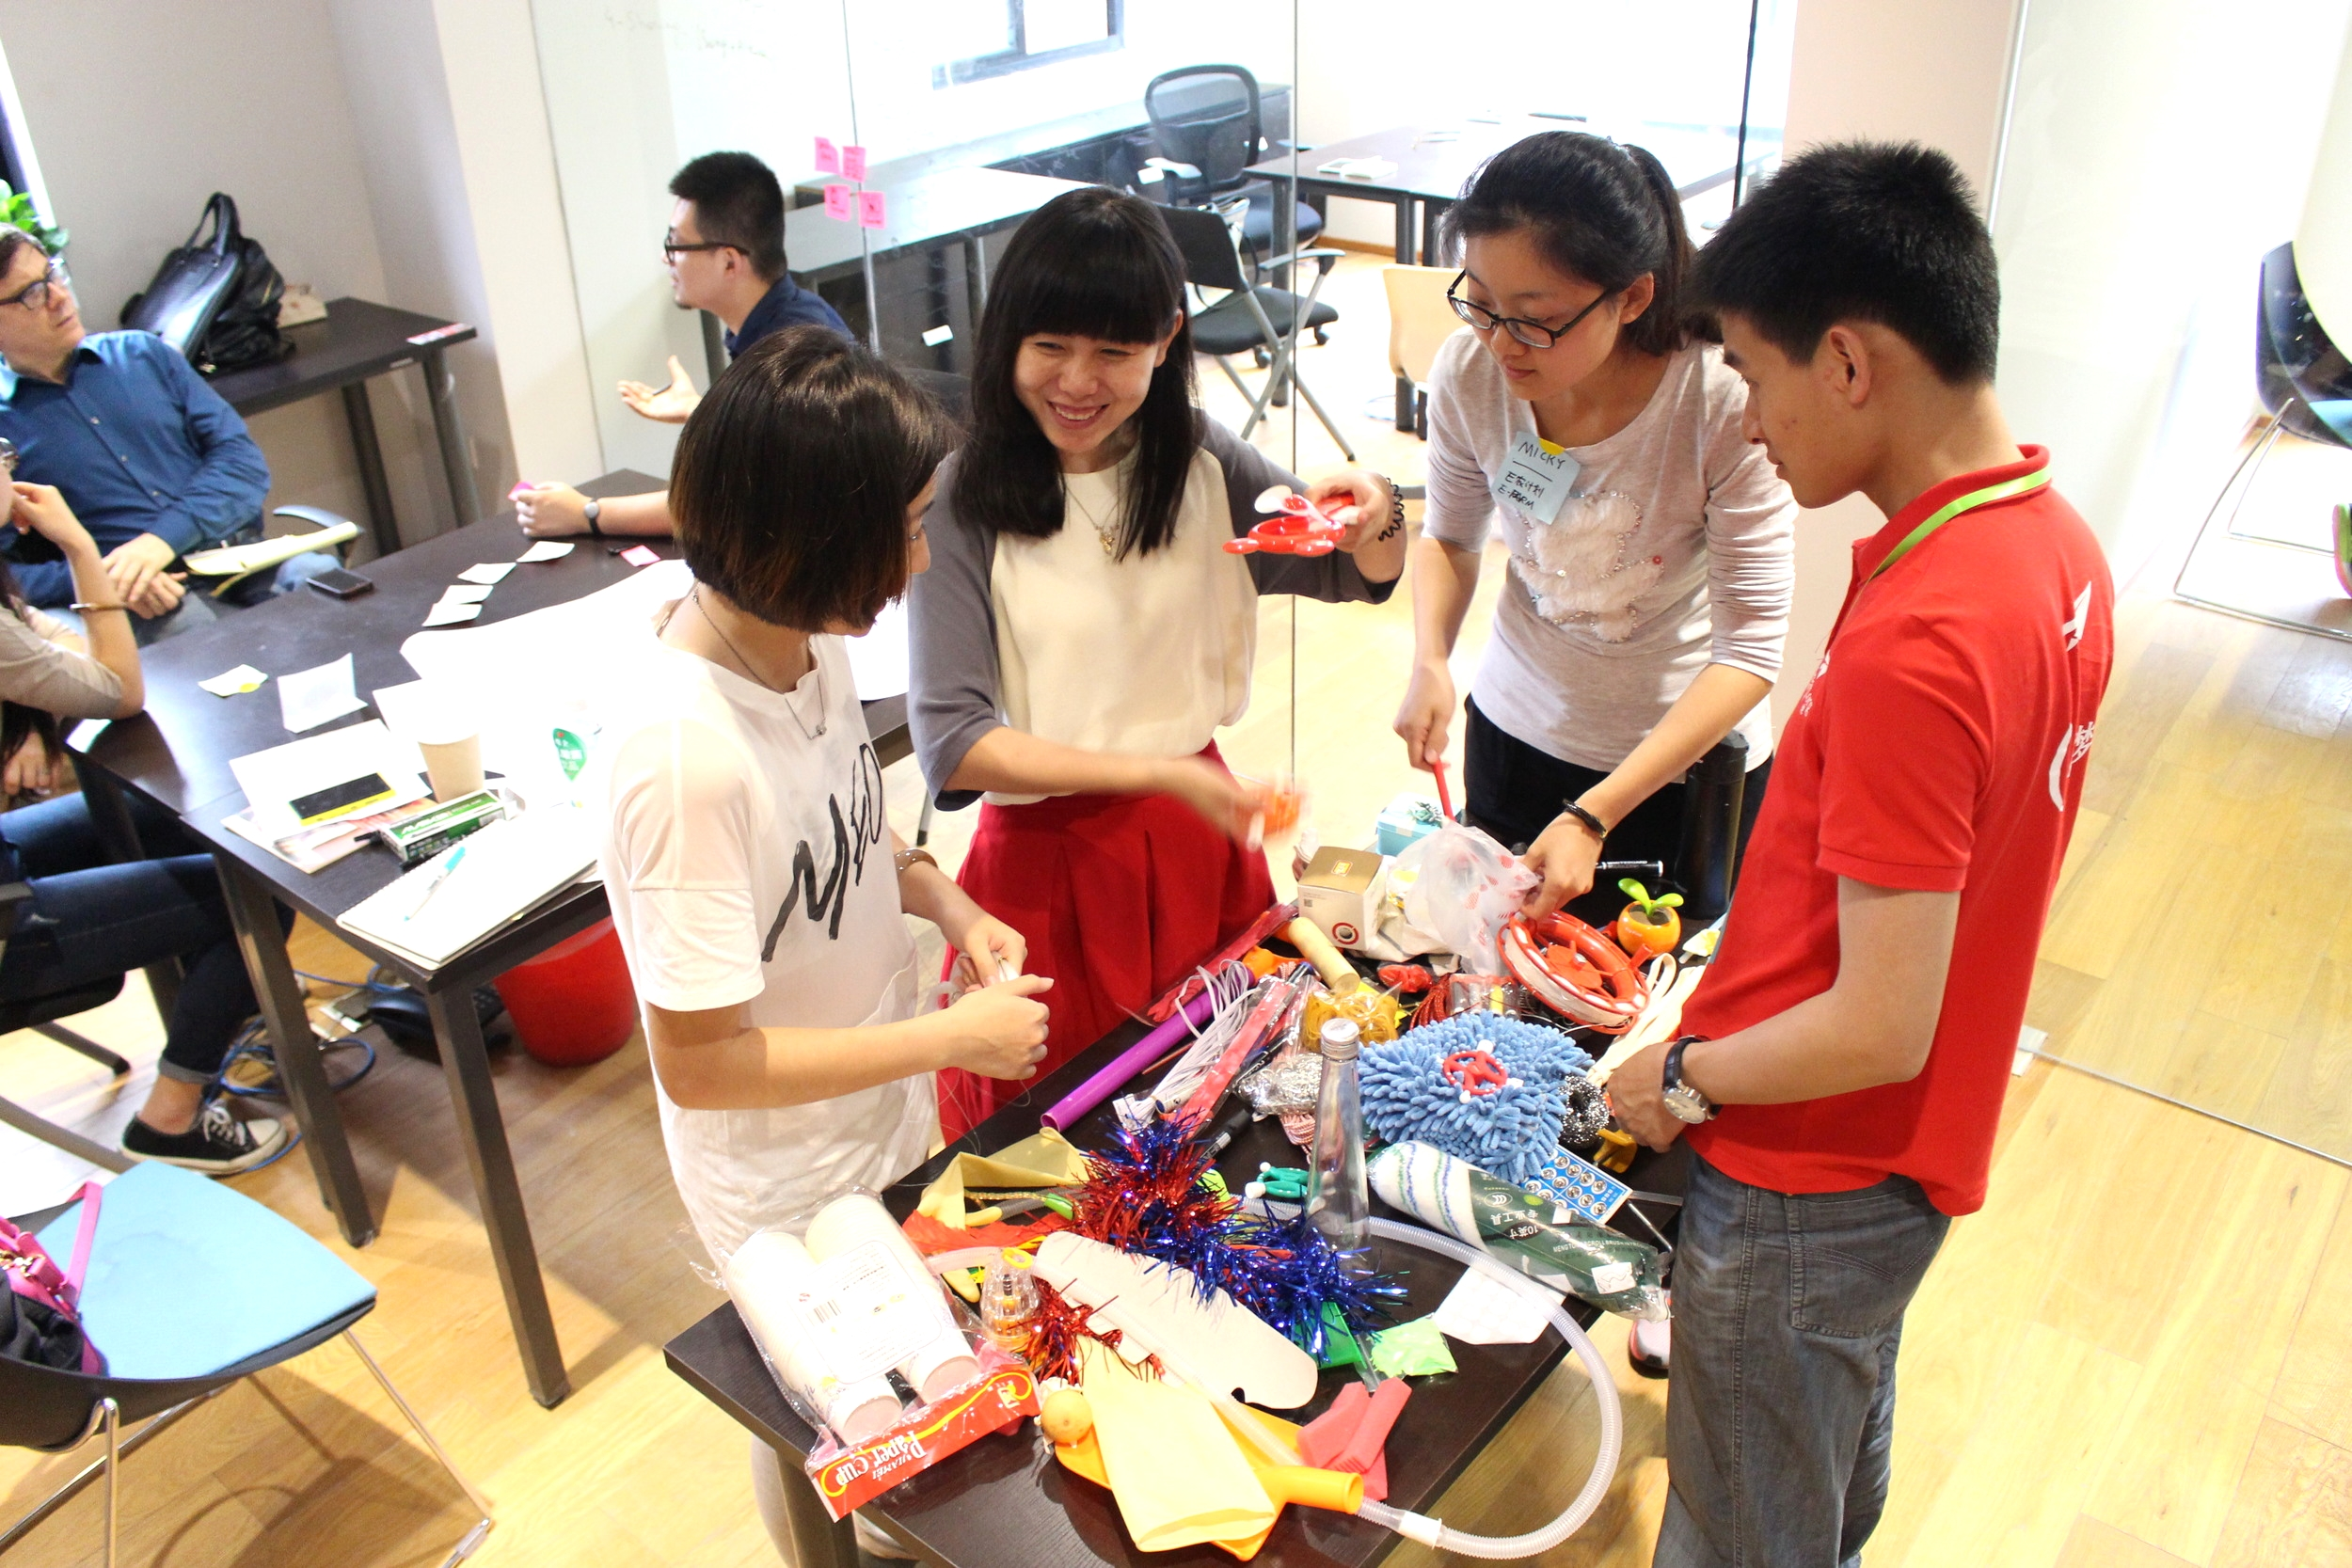 *educators and designers tinker with objects to create early-stage concepts for the future of learning